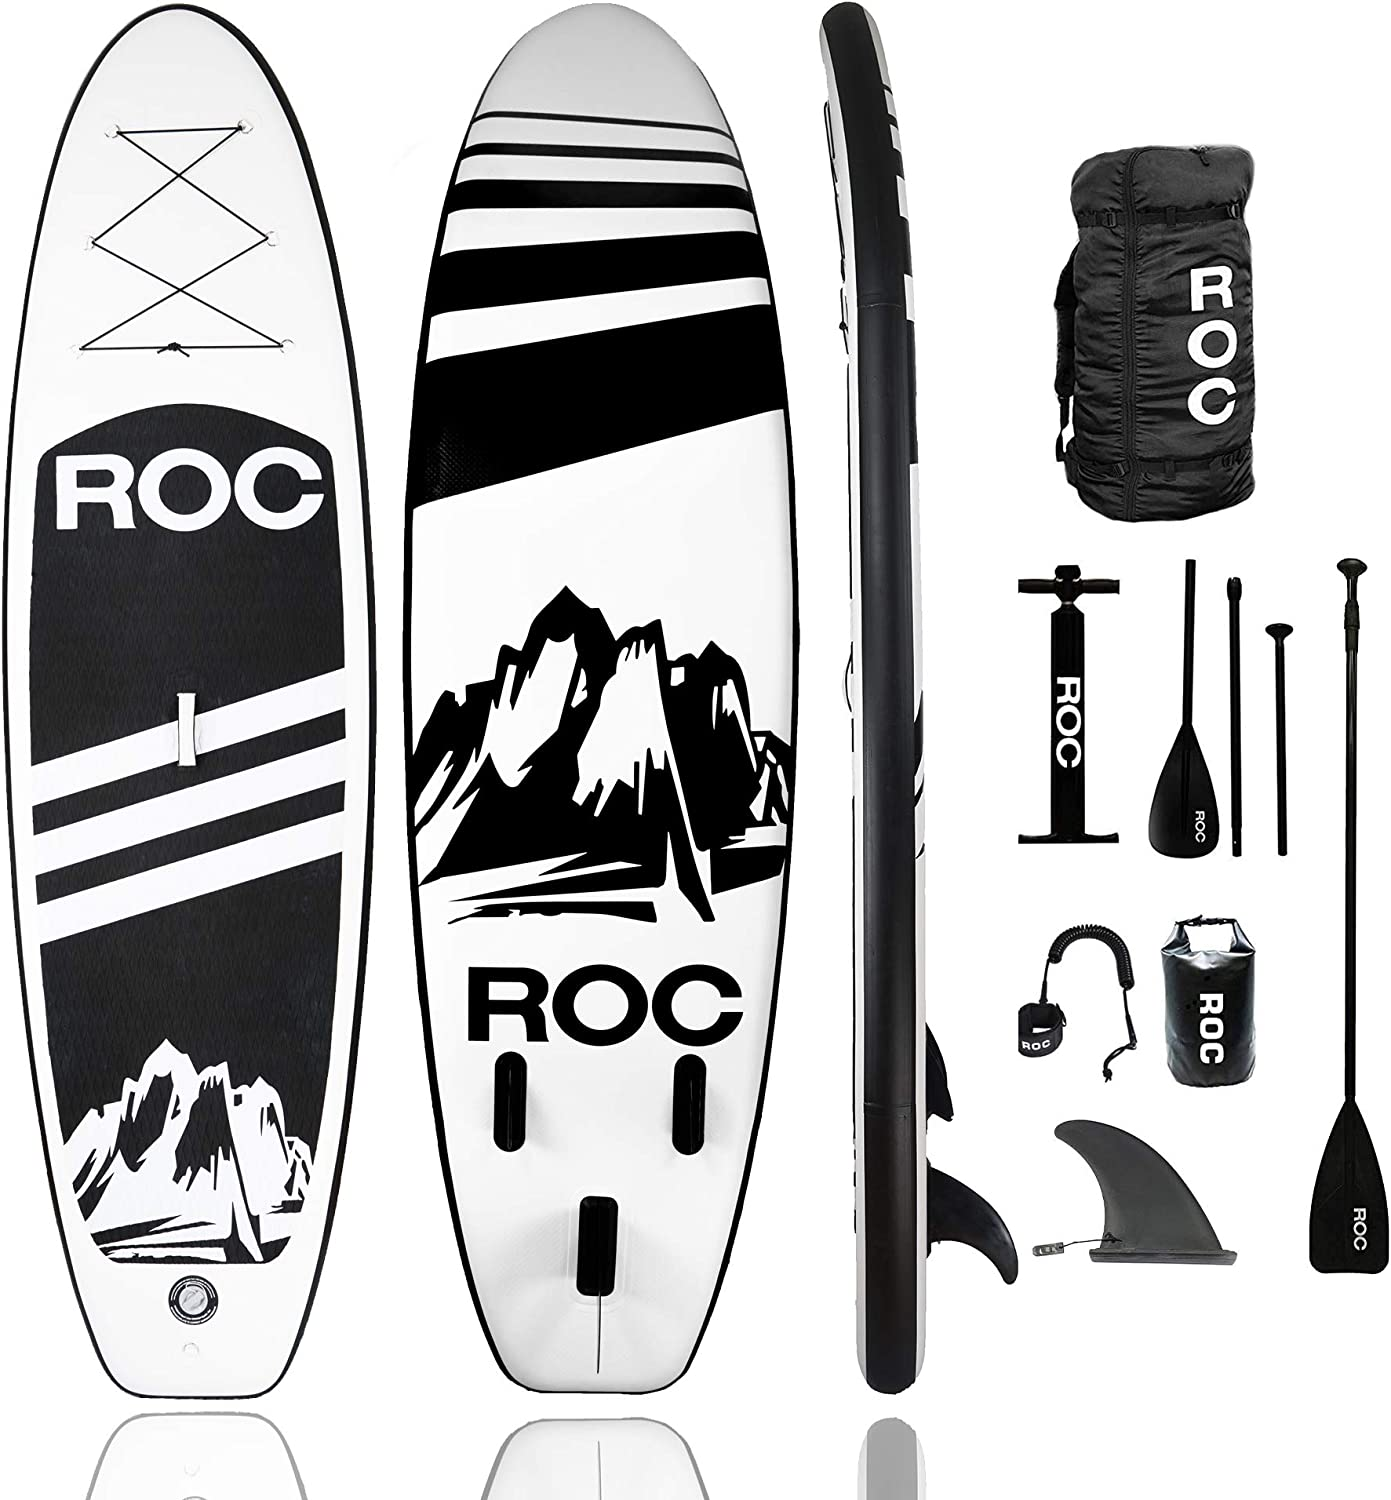 Roc Inflatable Stand Up Paddle Board W Free Premium SUP Accessories & Backpack, Non-Slip Deck Bonus Waterproof Bag, Leash, Paddle and Hand Pump Youth & Adultt